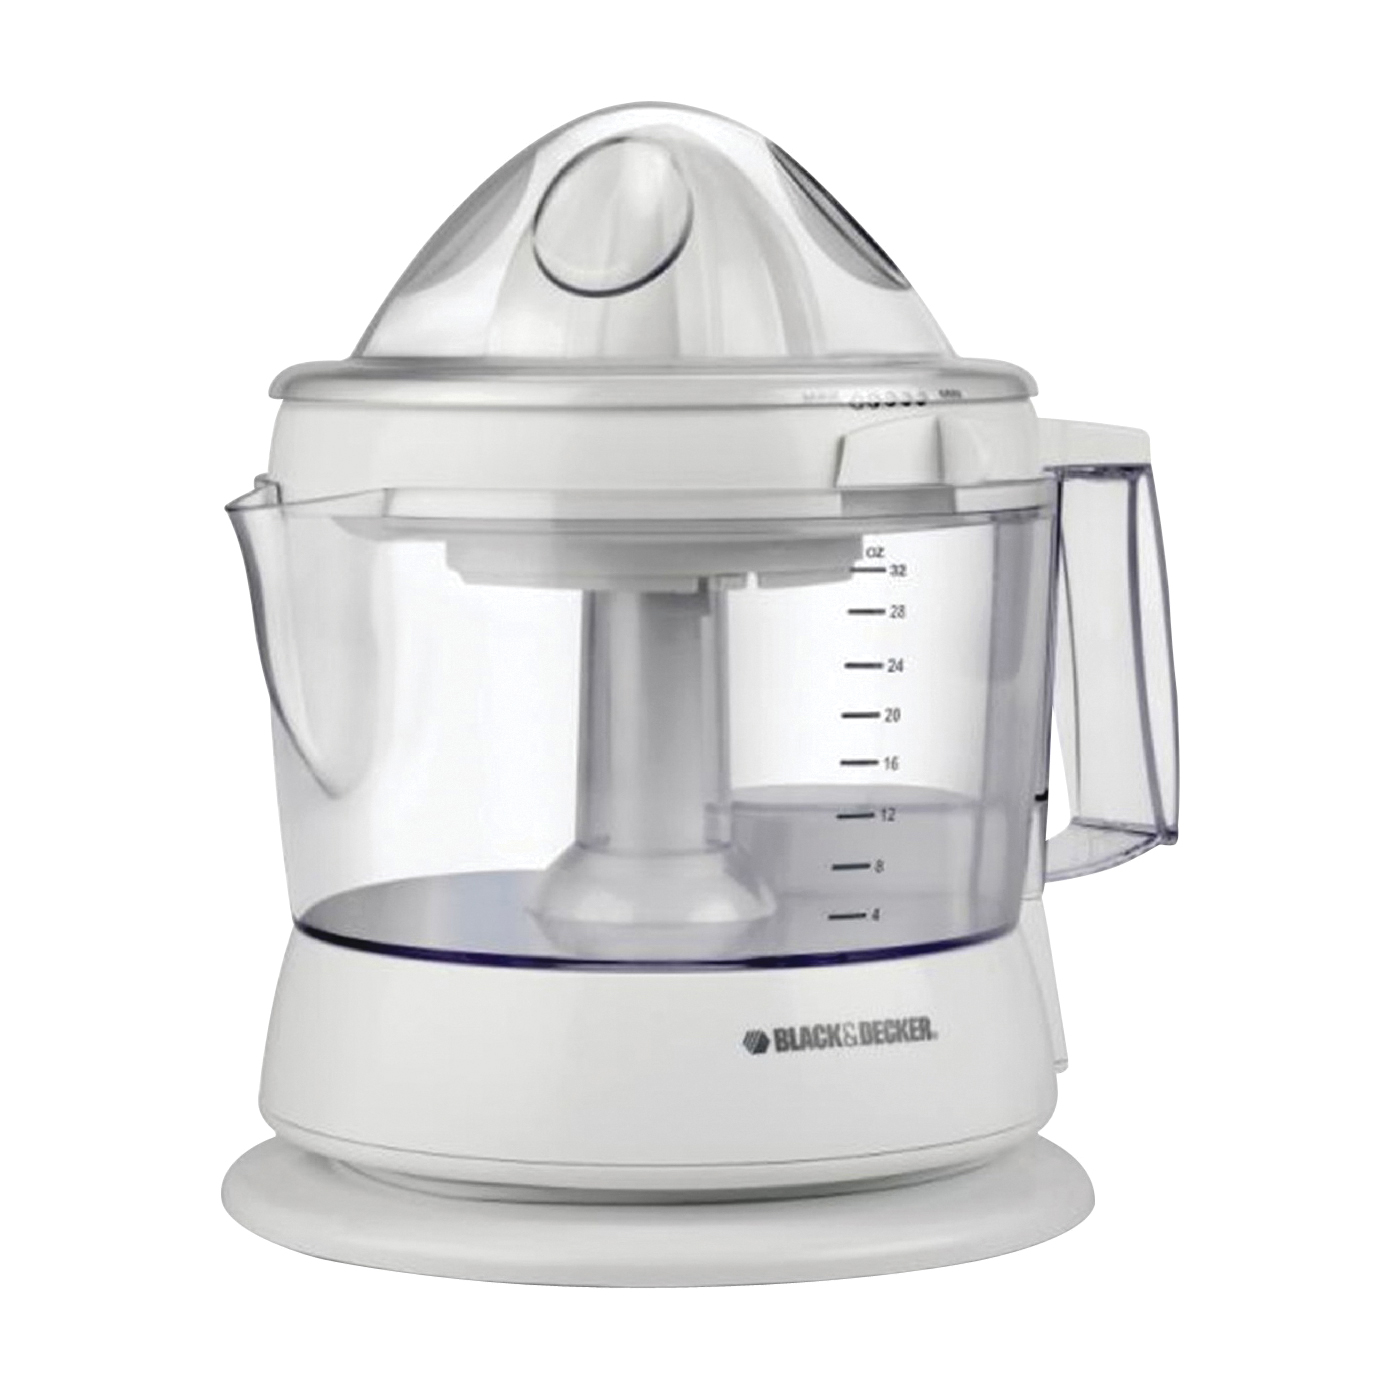 Picture of Black+Decker CJ625 Citrus Juicer, 34 oz Bowl, Plastic Housing Material, White Housing